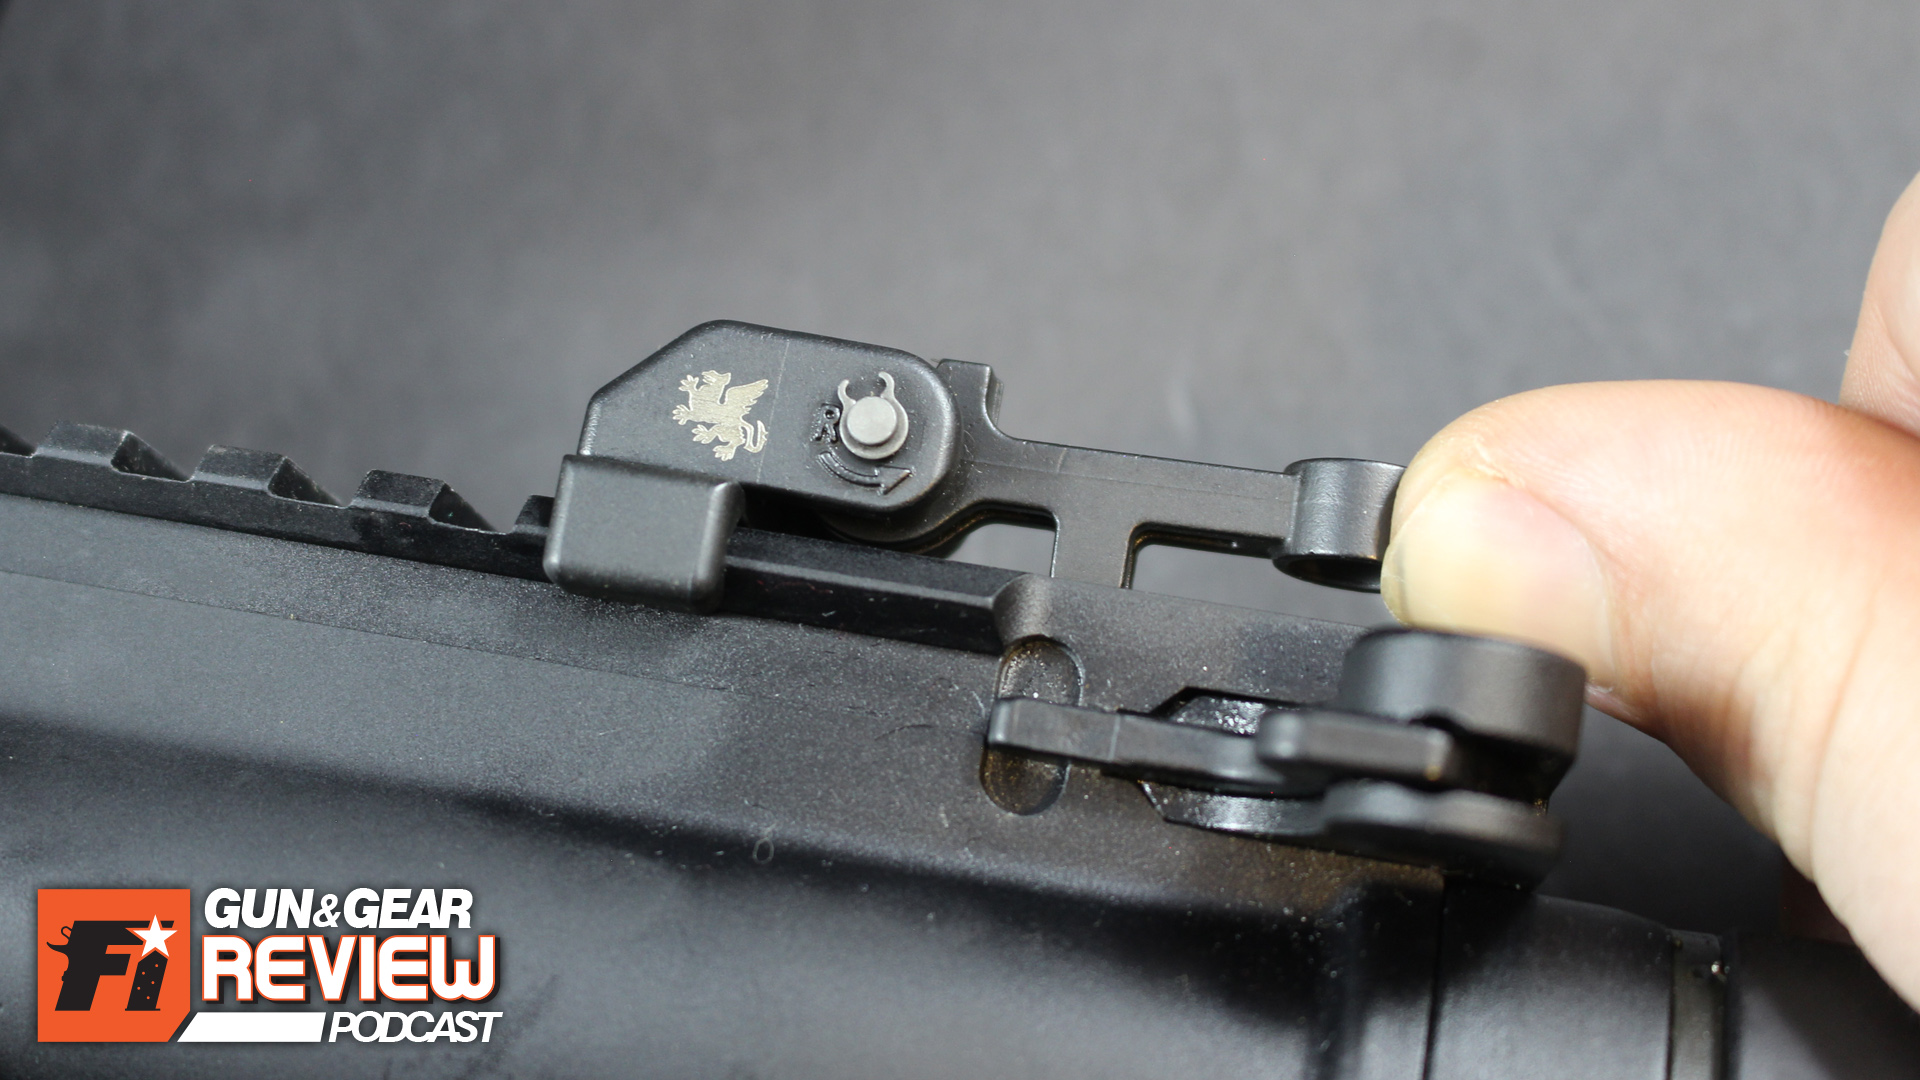 Should the need arise for iron sights, it only takes a few seconds to manual pull the front and rear sights up in the ready position. -